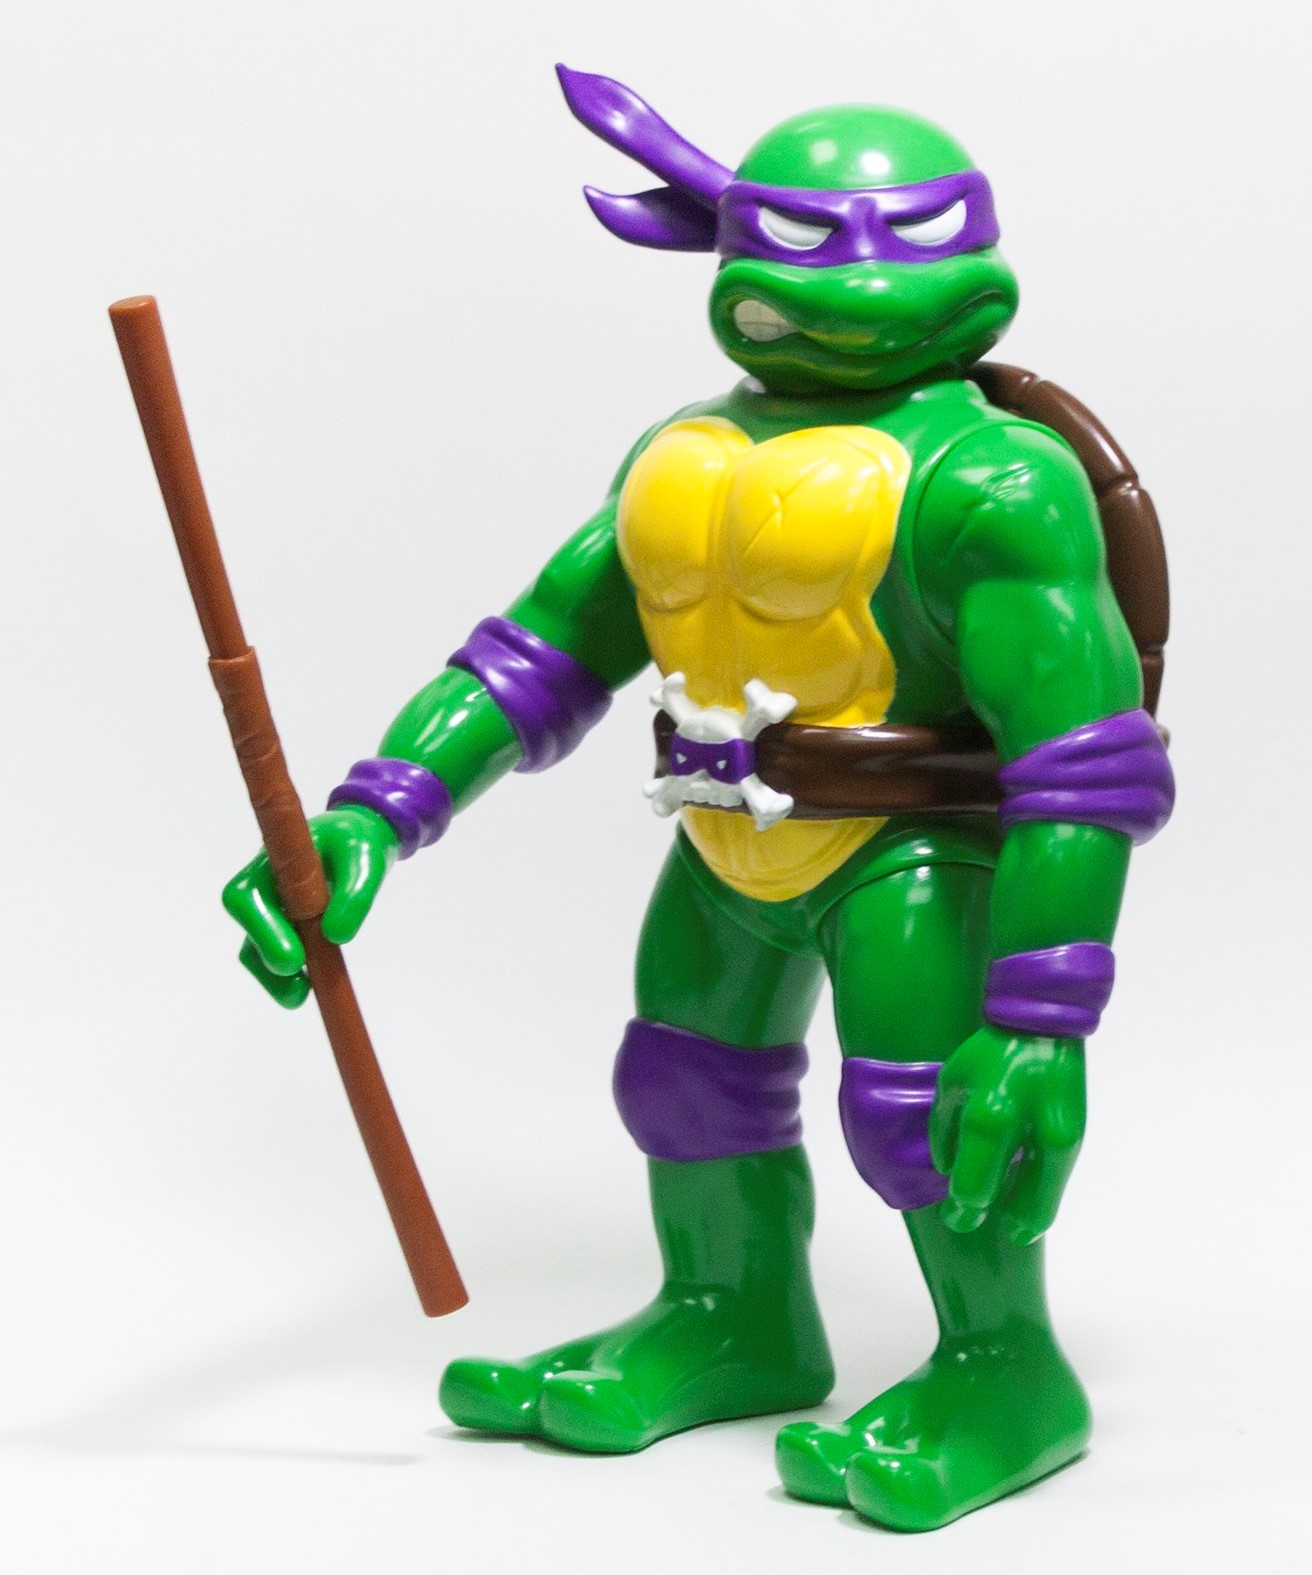 869ce0c4f1 RealxHead Teenage Mutant Ninja Turtles Vinyl Figure Collection by Unbox  Industries - Donatello